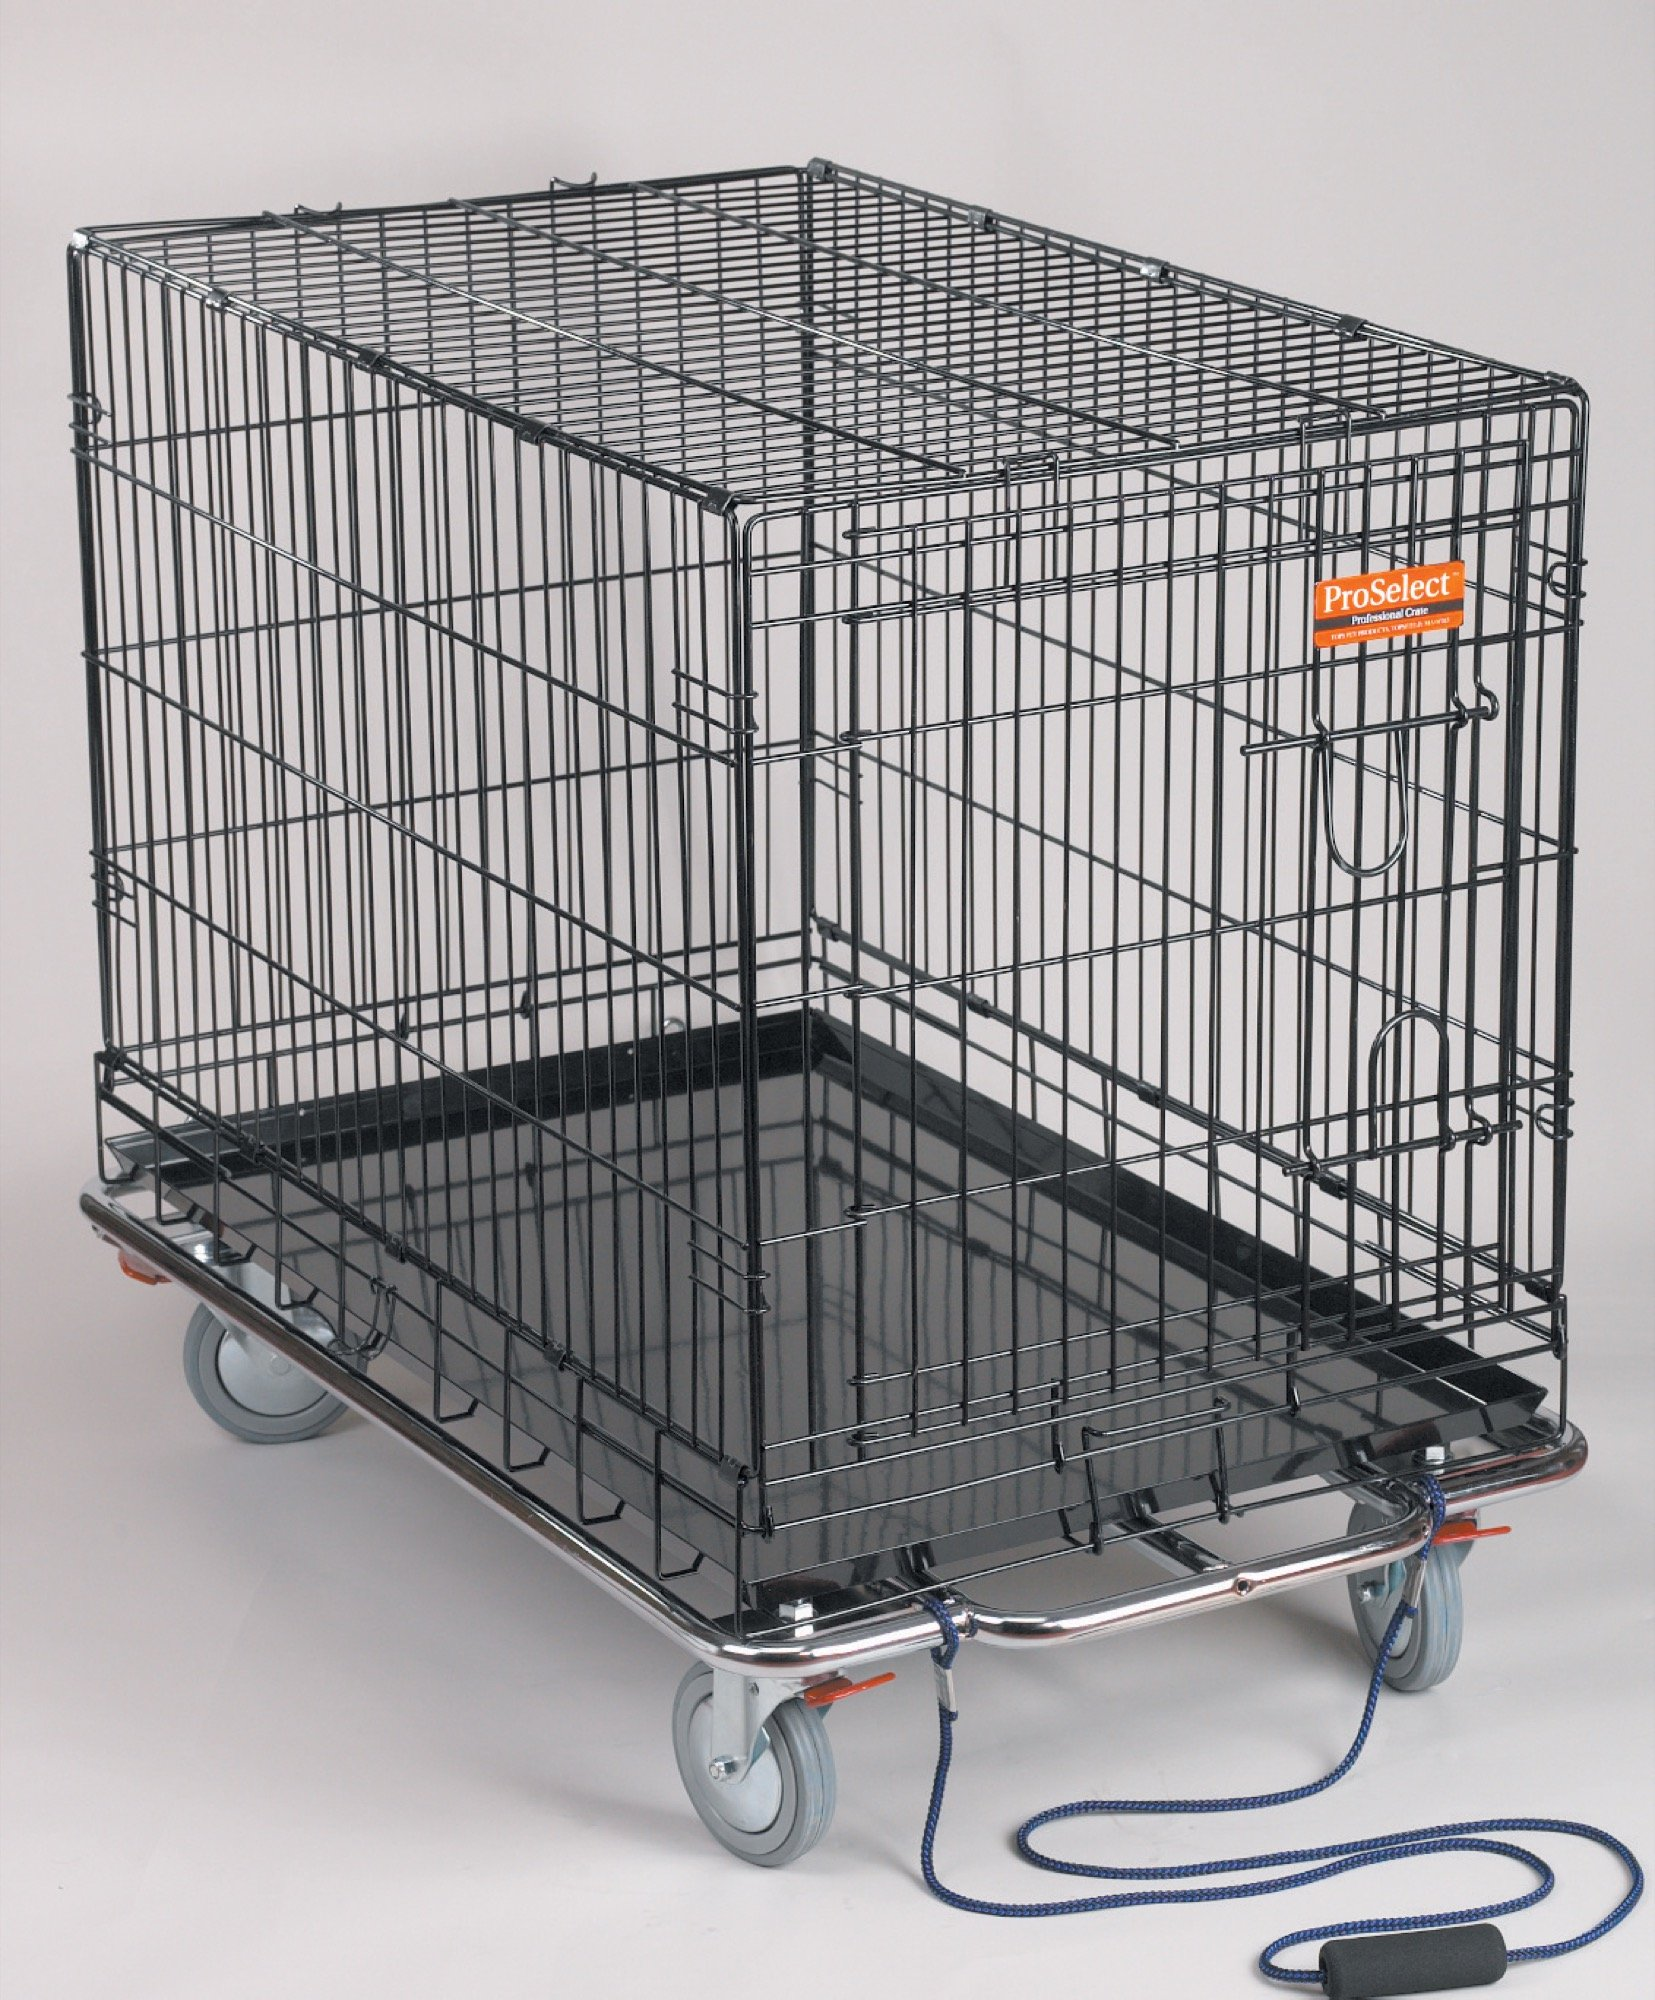 ProSelect  Kennel Karts — Heavy-Duty Steel Chrome Carts with Wheels Designed to Move Kennel Cages Around Grooming Shops, Animal Clinics, Shelters, or Rescues